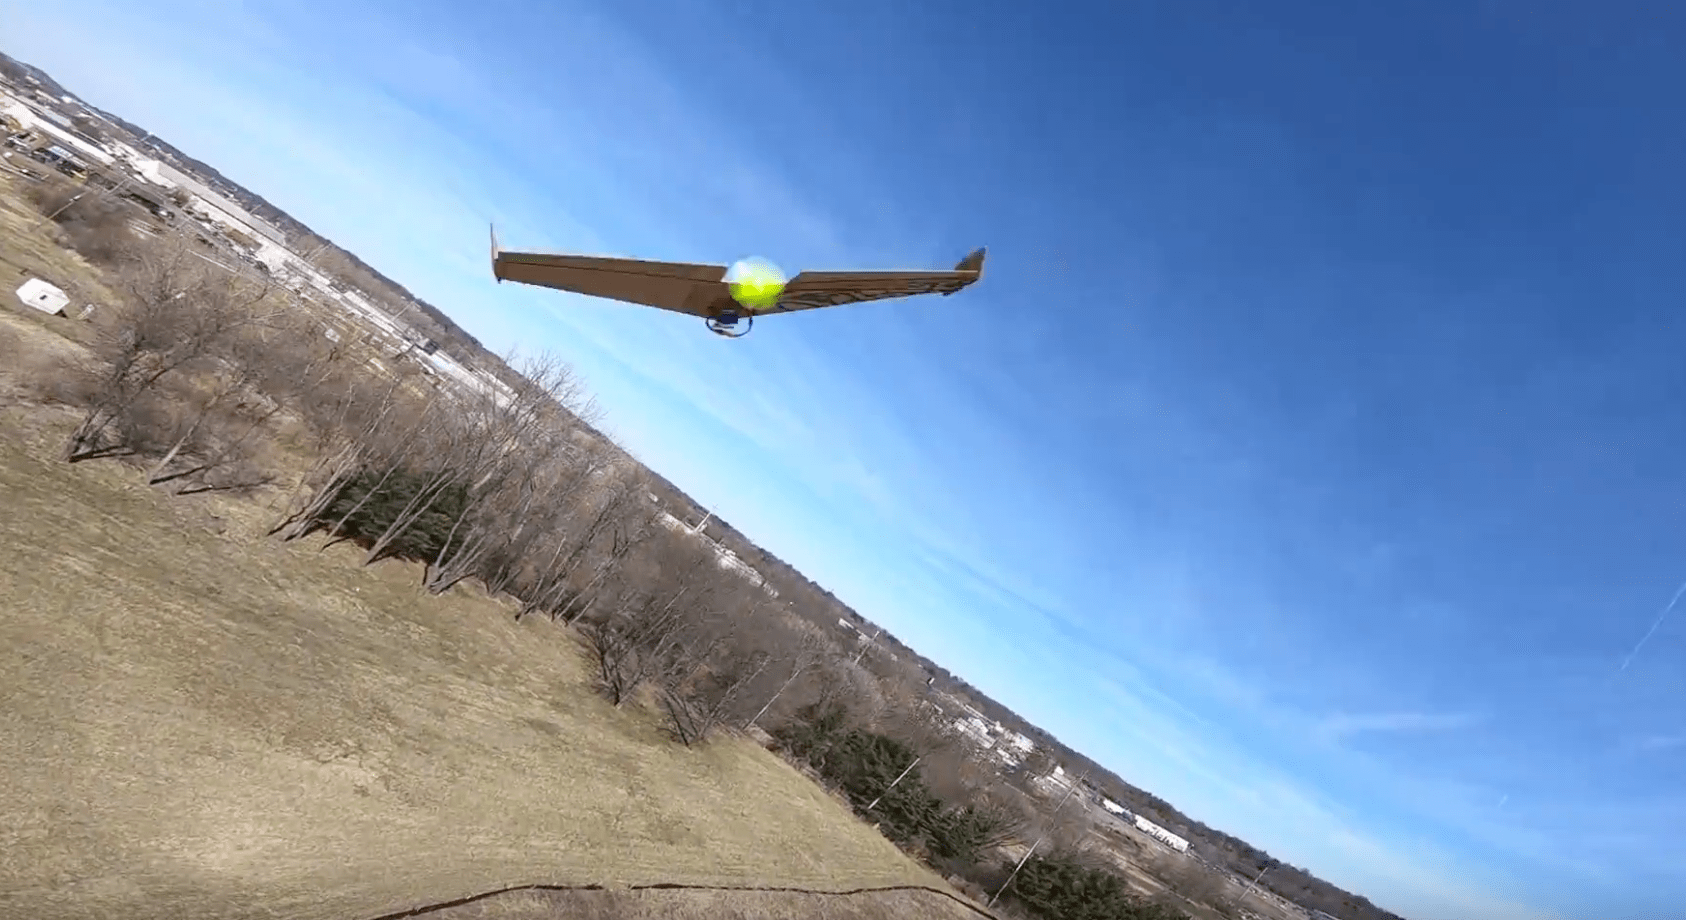 Build an R/C Plane from a Pizza Box